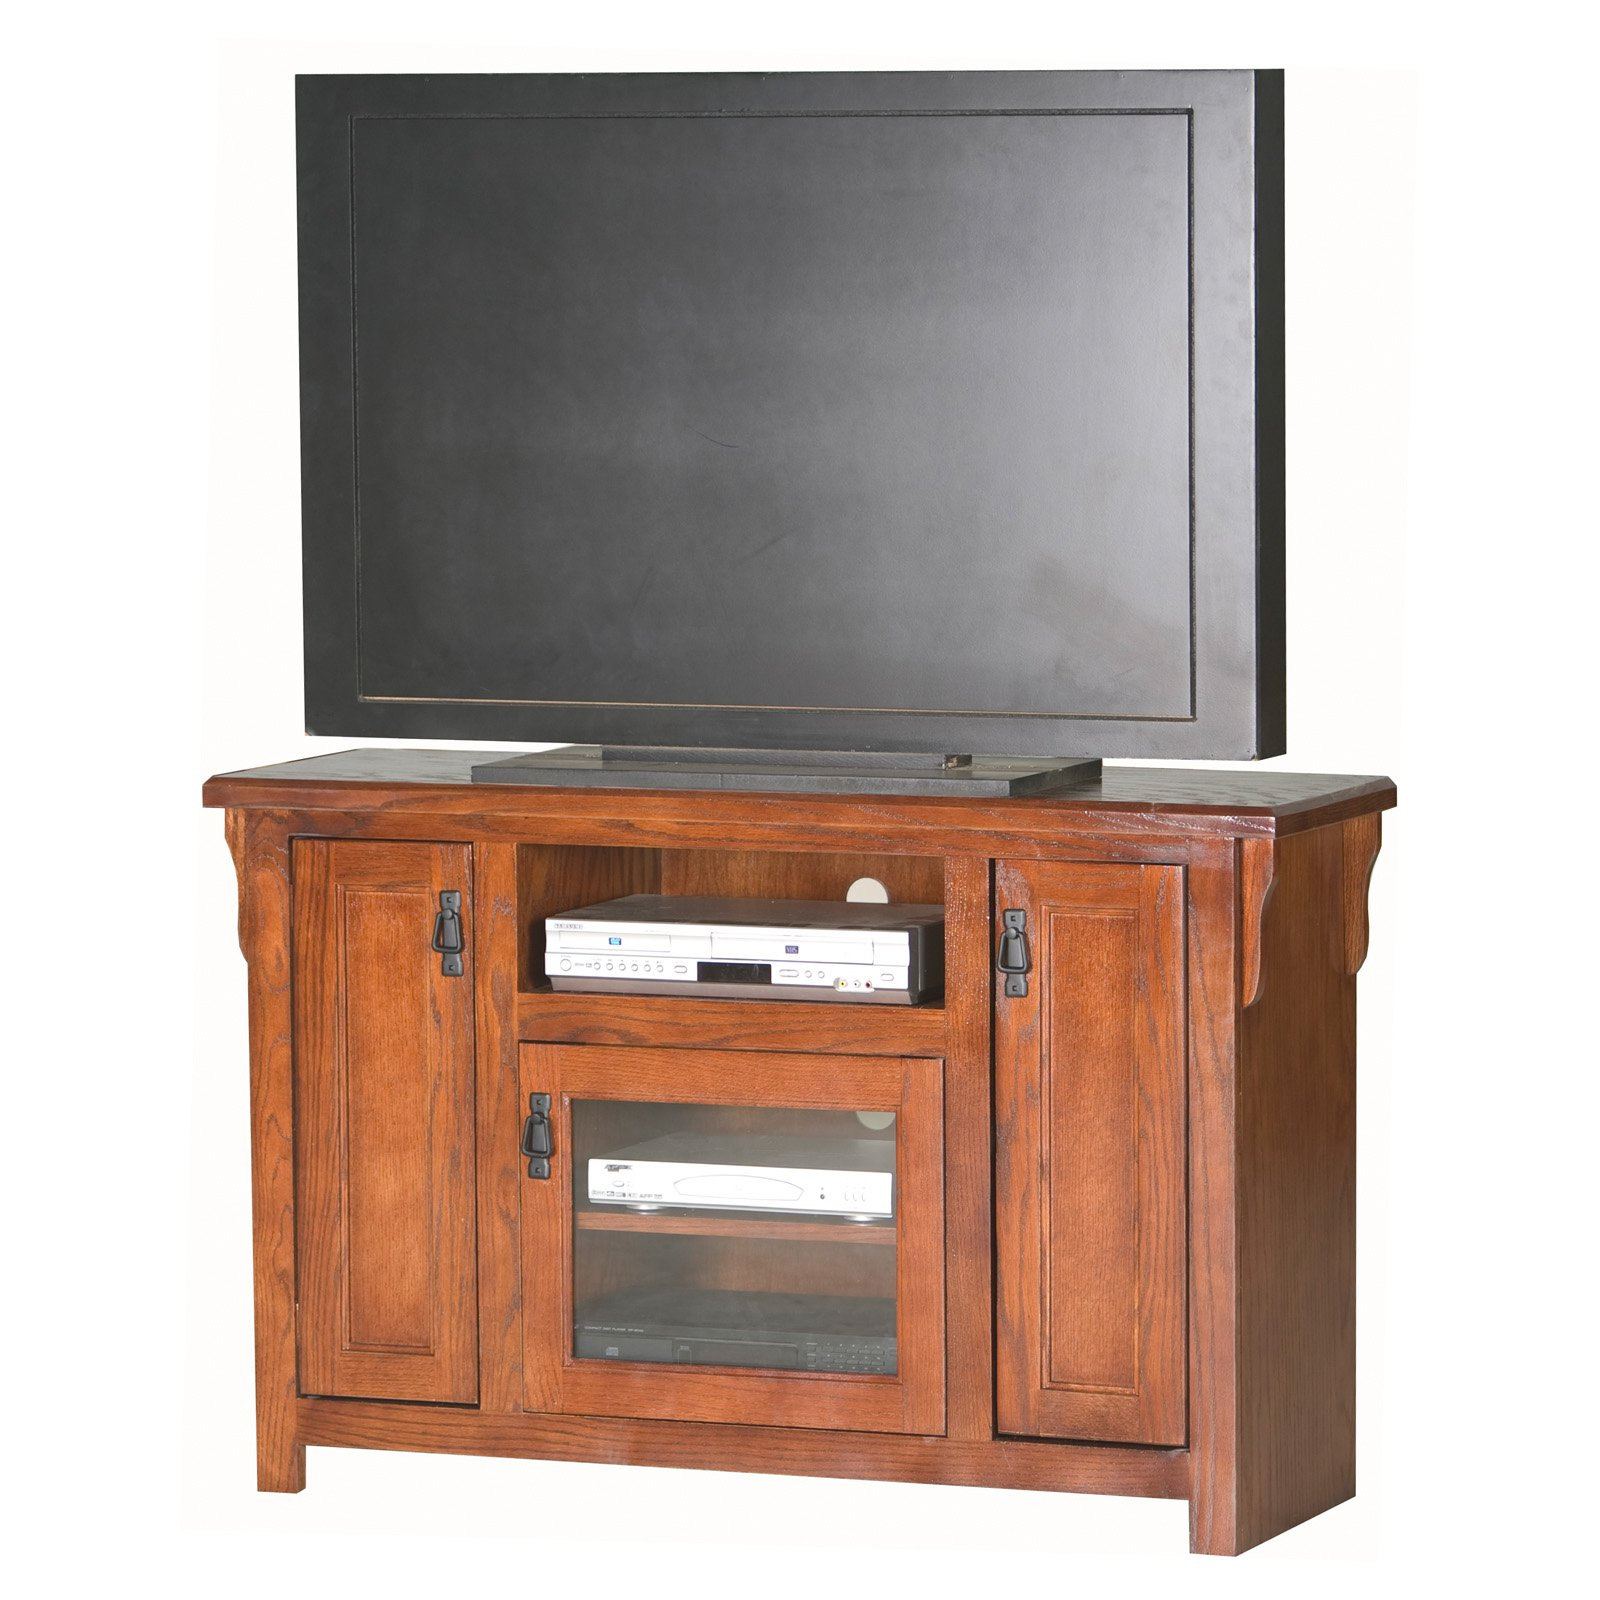 Eagle Furniture Mission 49 in. TV Stand